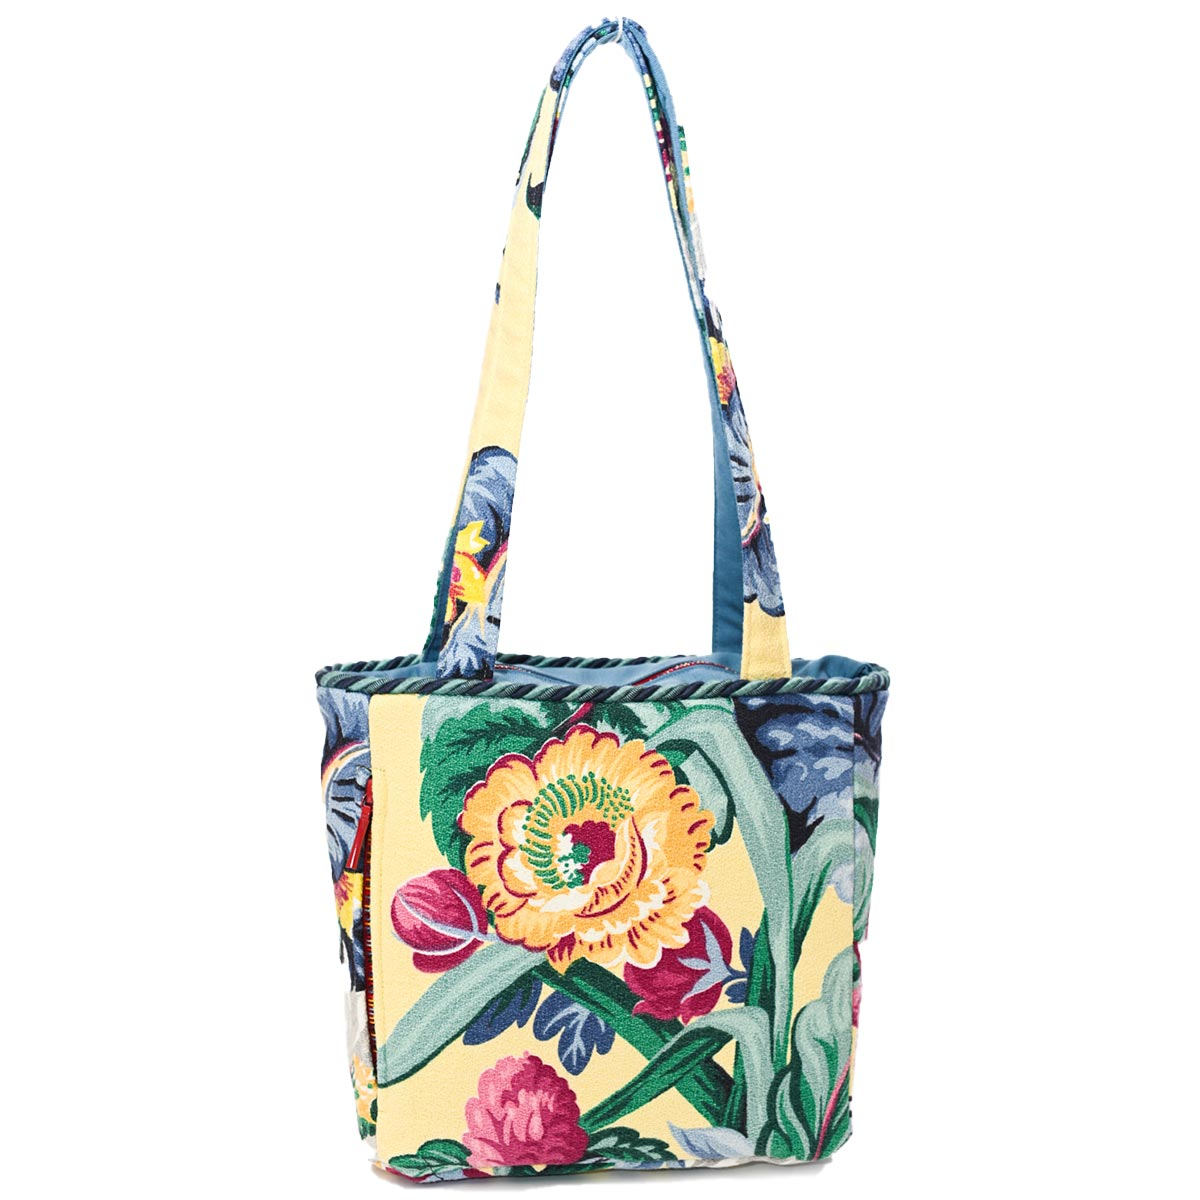 Square Bag Floral Motif on Vanilla